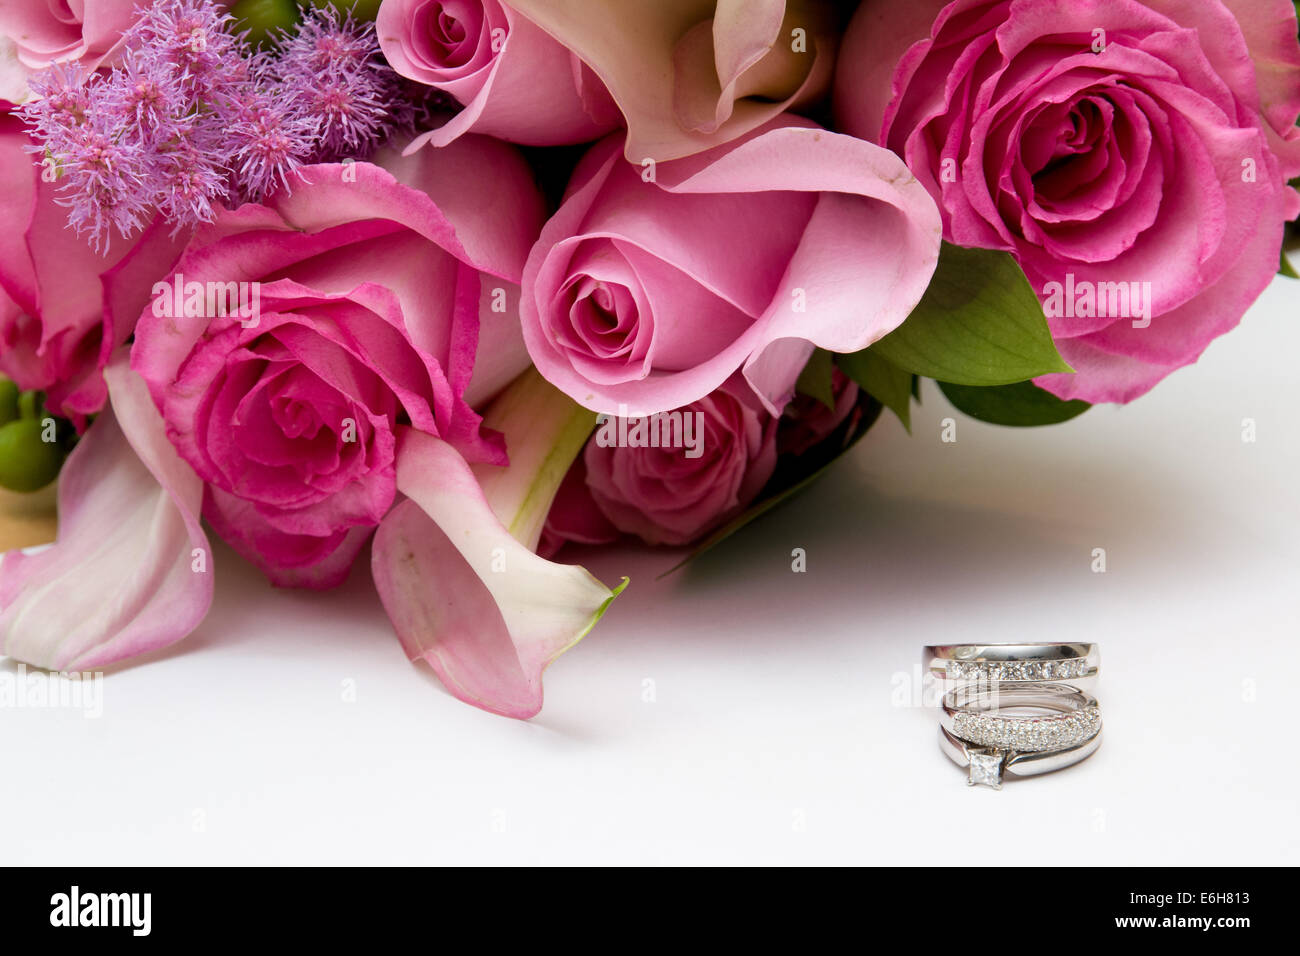 stock photo white gold and diamond wedding rings and an engagement ring are displayed on a white background next to pink wedding flowers - Pink Wedding Rings